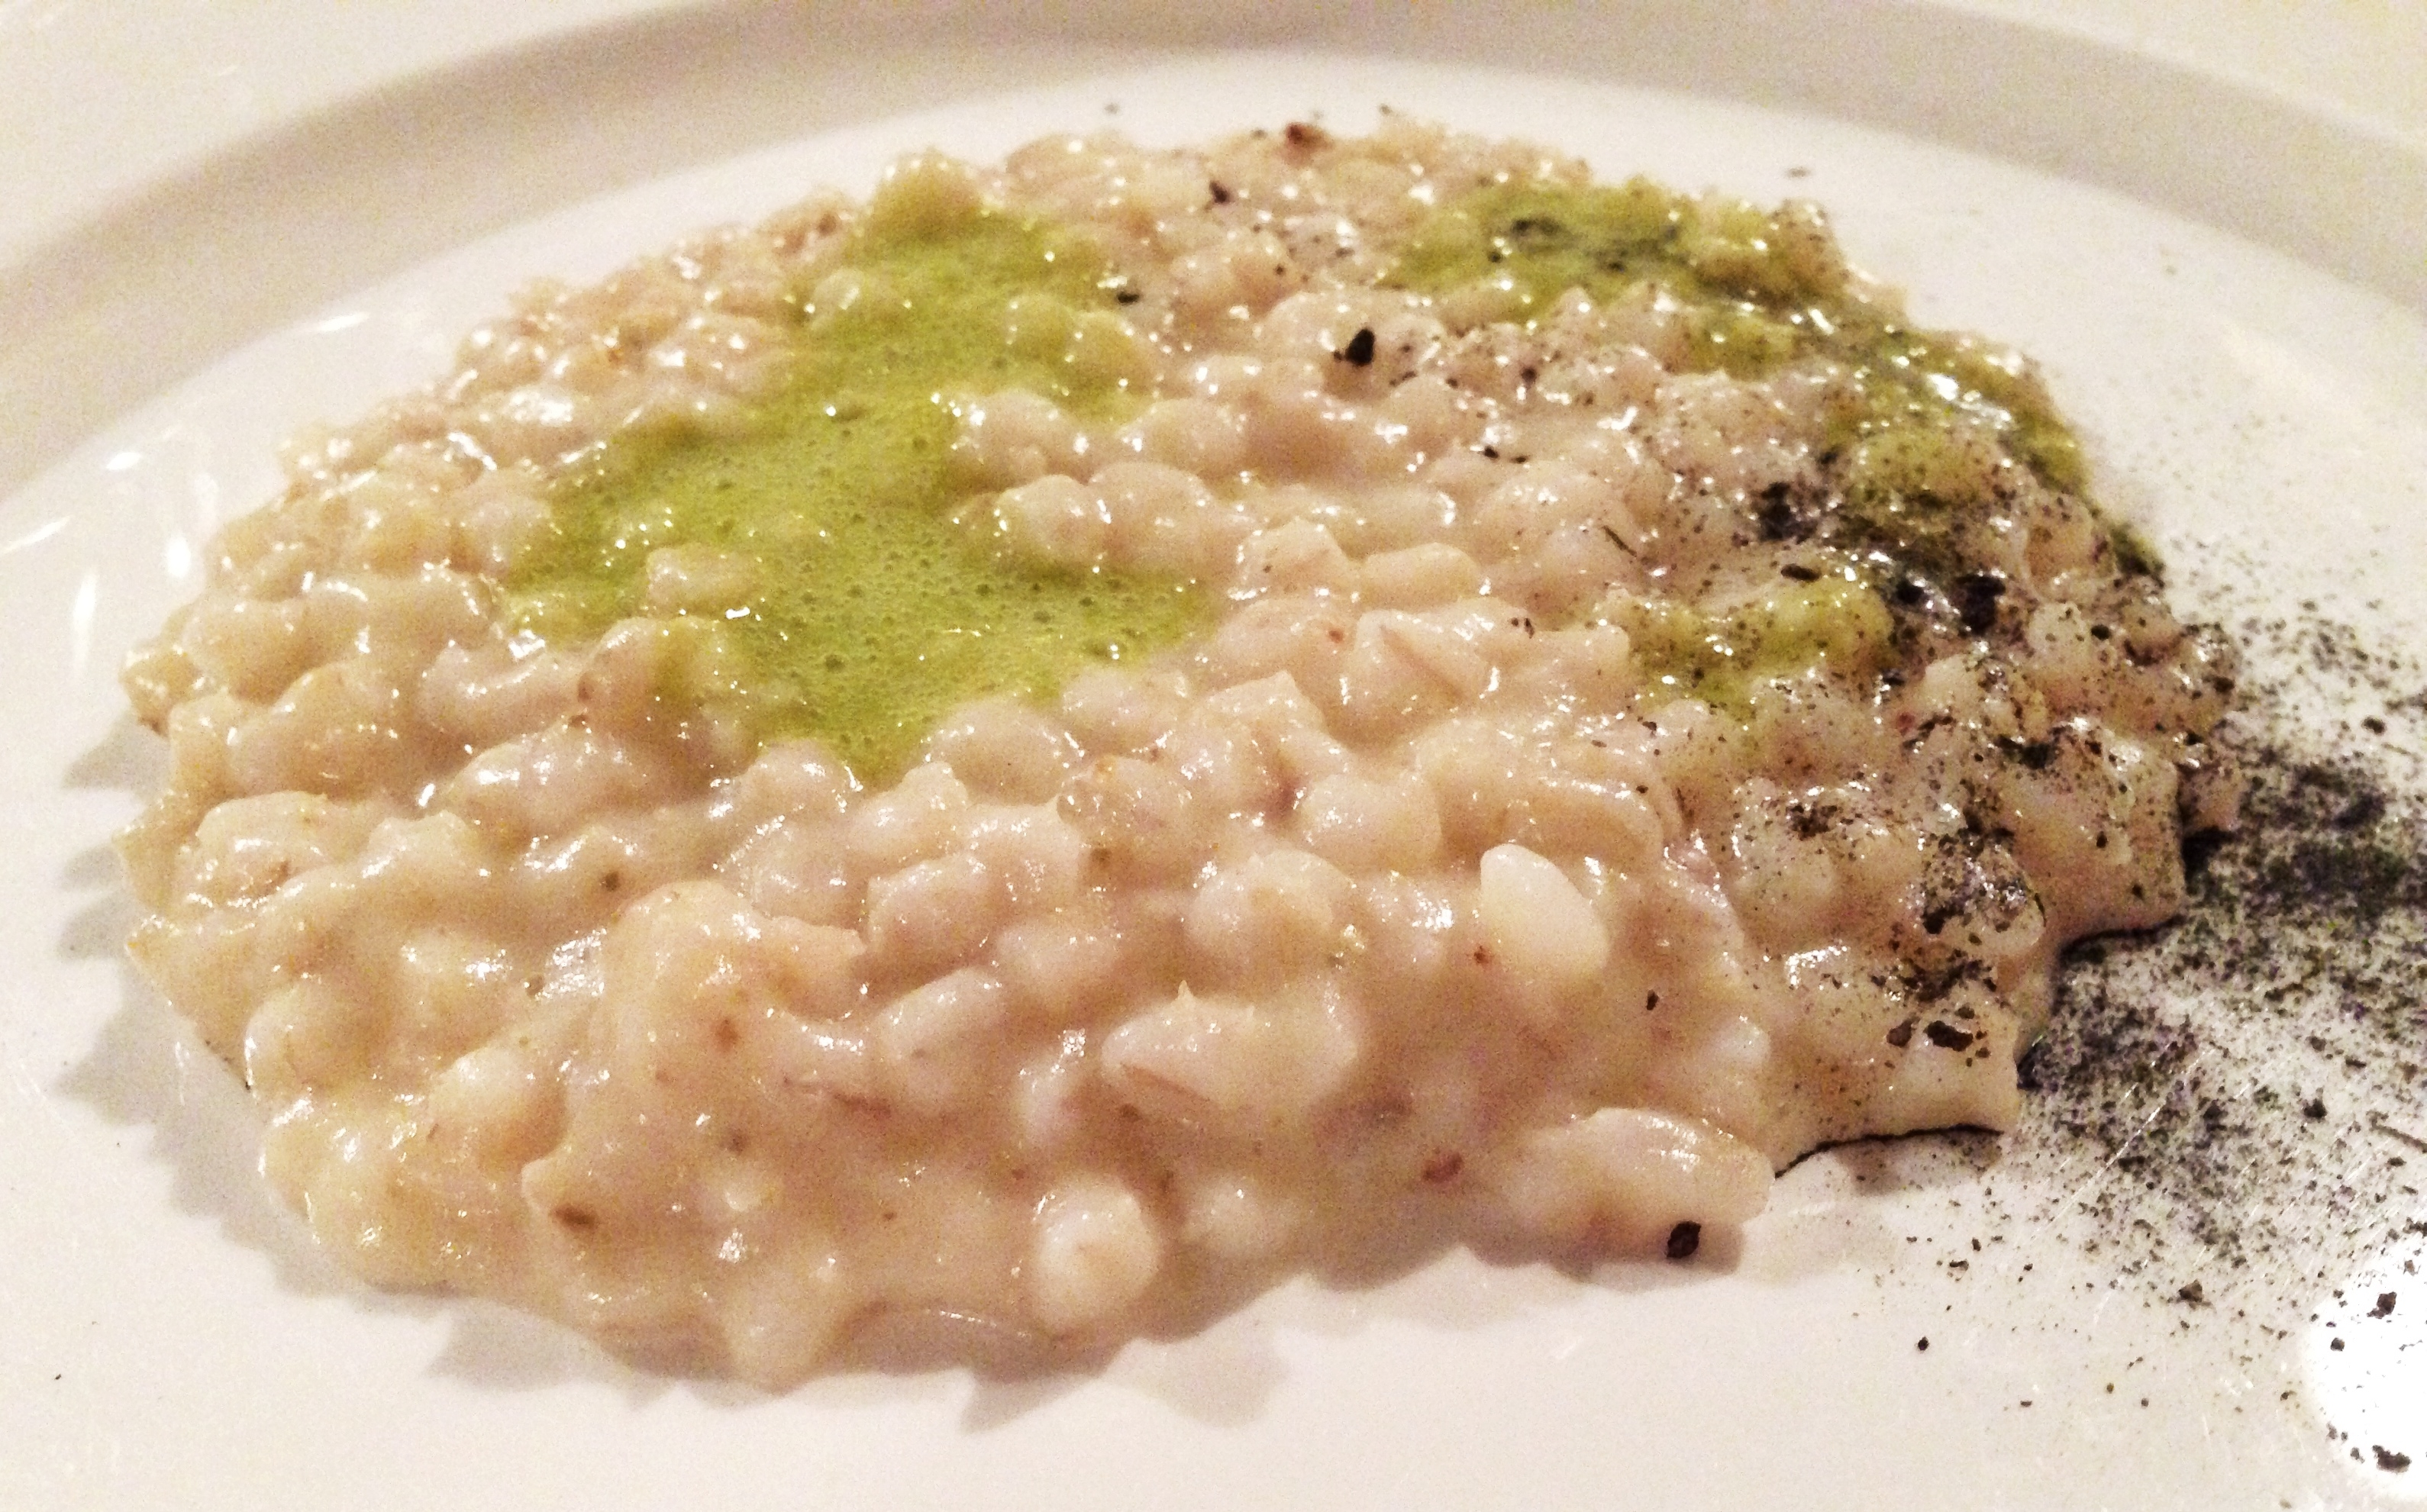 stelle orzotto